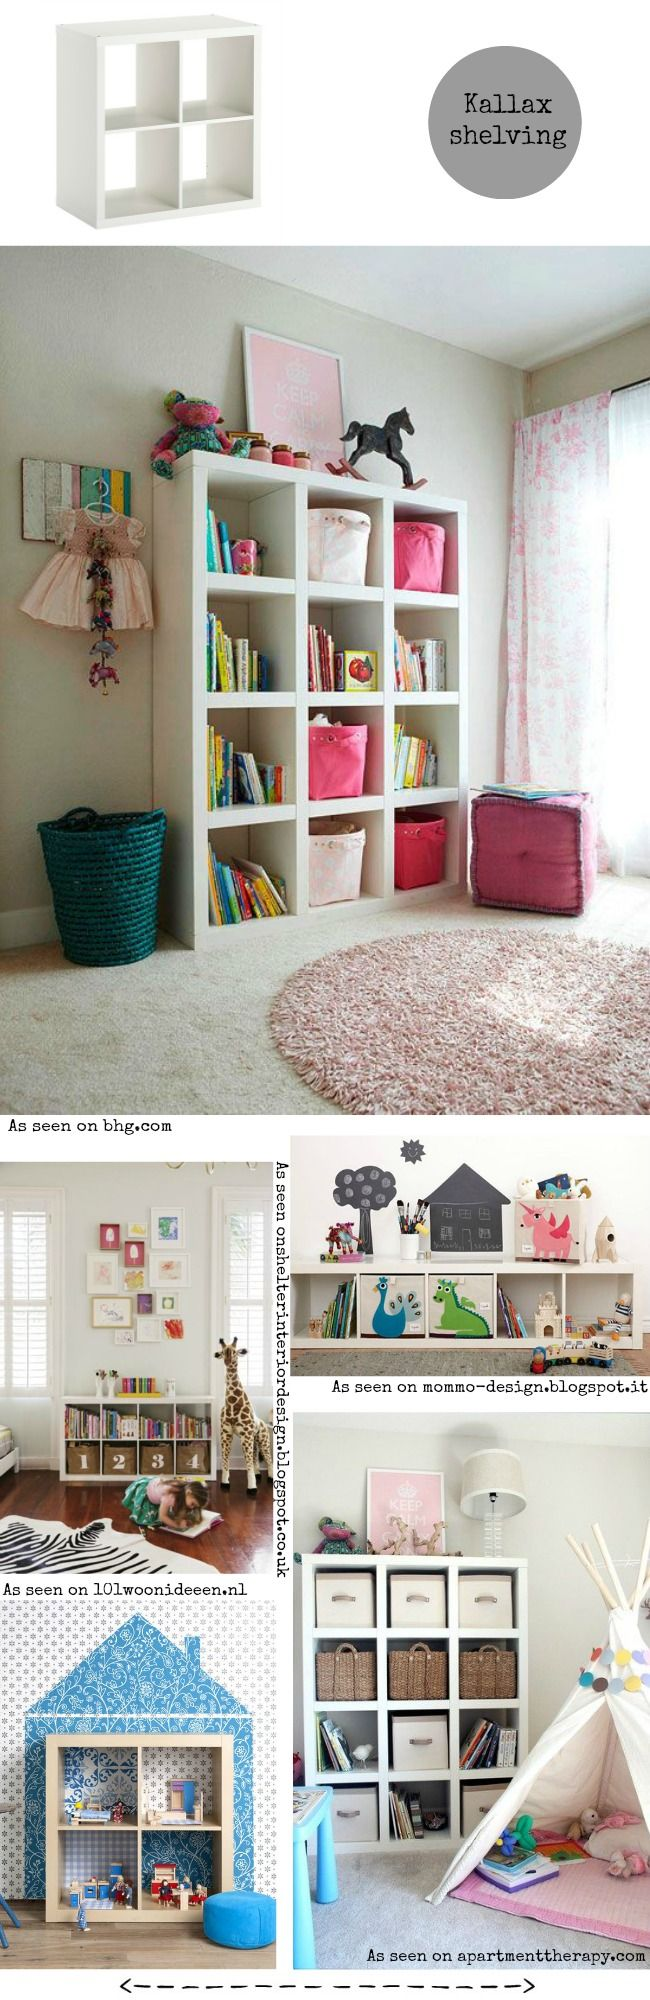 Different Ways To Use The Kallax / Expedit Shelving From Ikea Inspiration  For A Kidsu0027